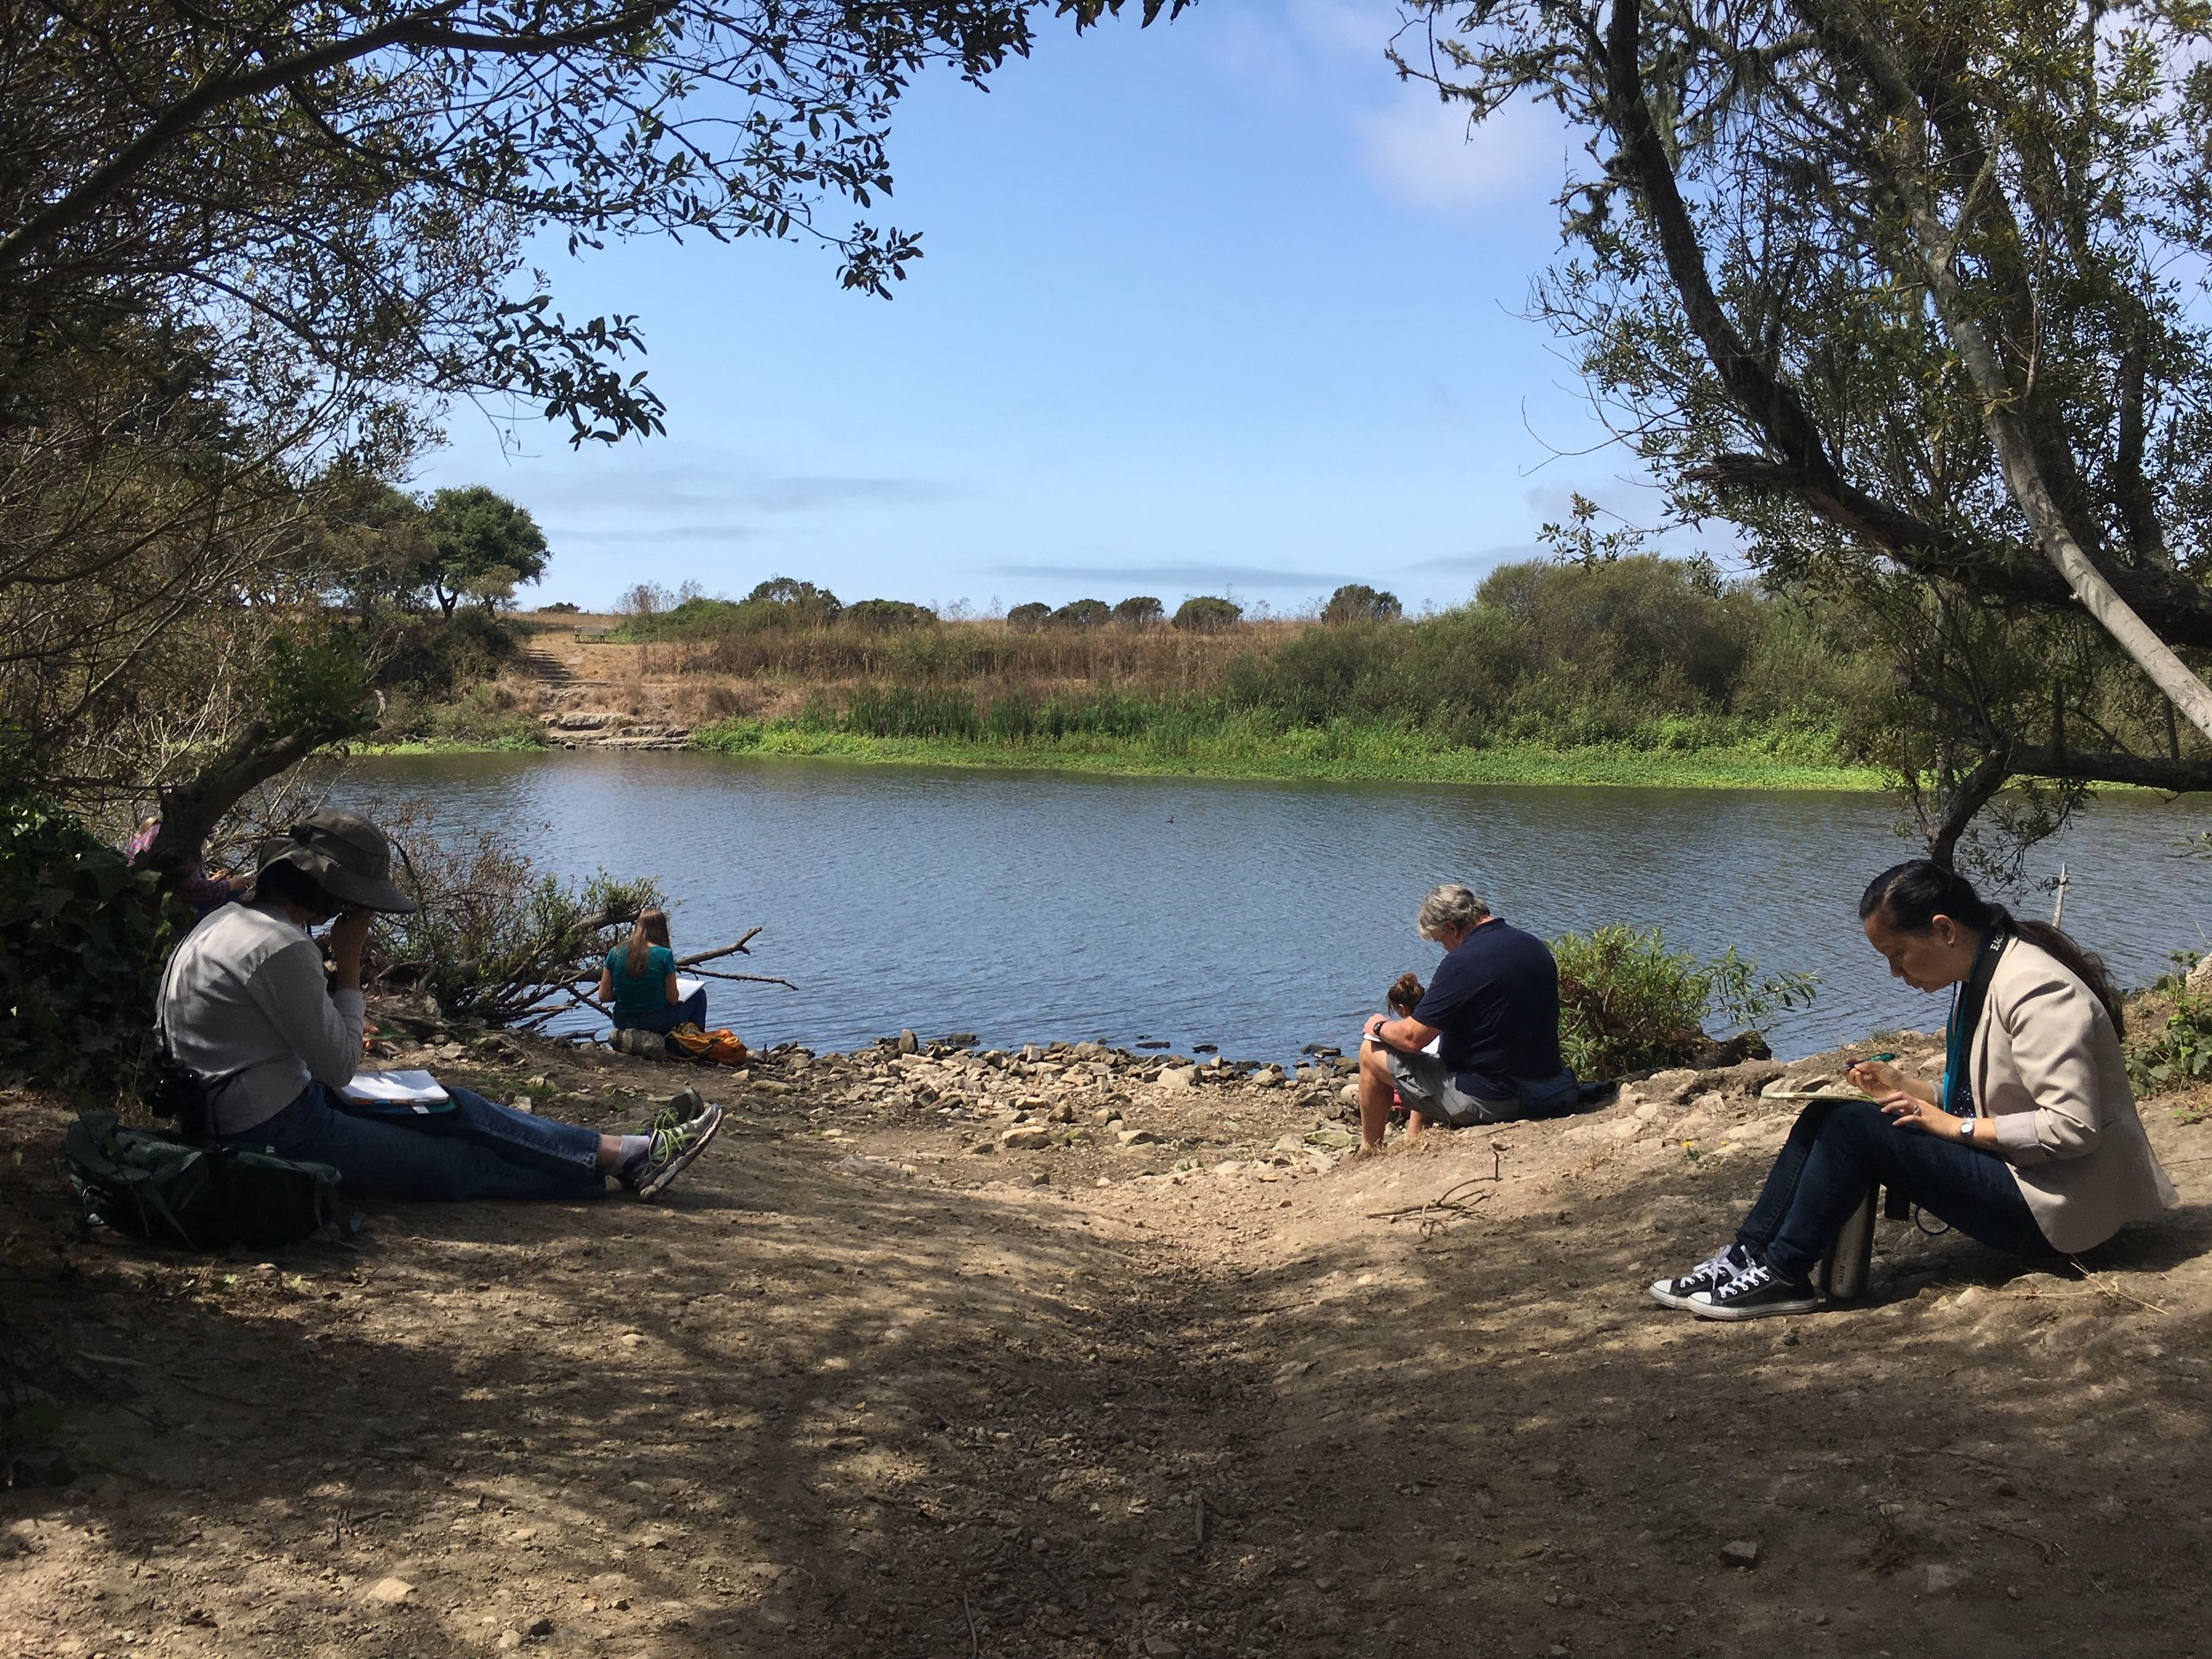 Journaling during a teacher workshop at Antonelli Pond in Santa Cruz, CA.